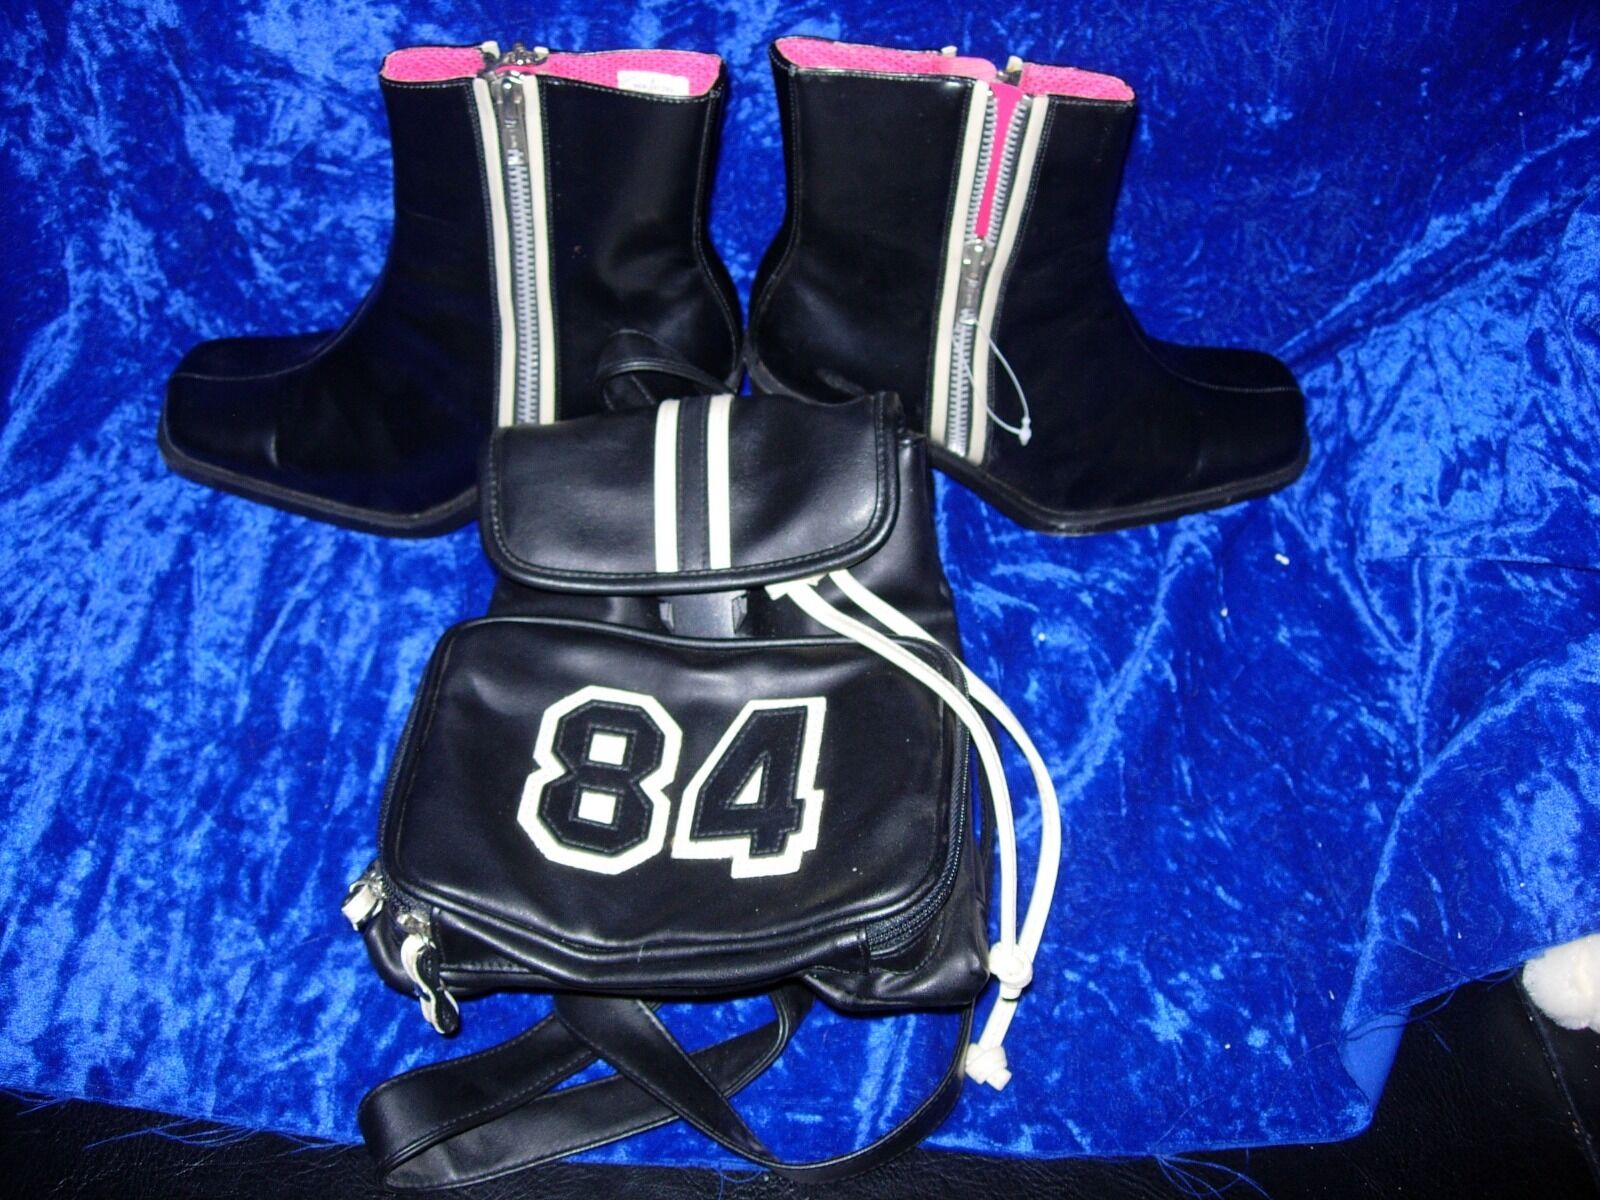 Black faux leather w ivory pink trim zipper ankle boots sz 8 & backpack 84